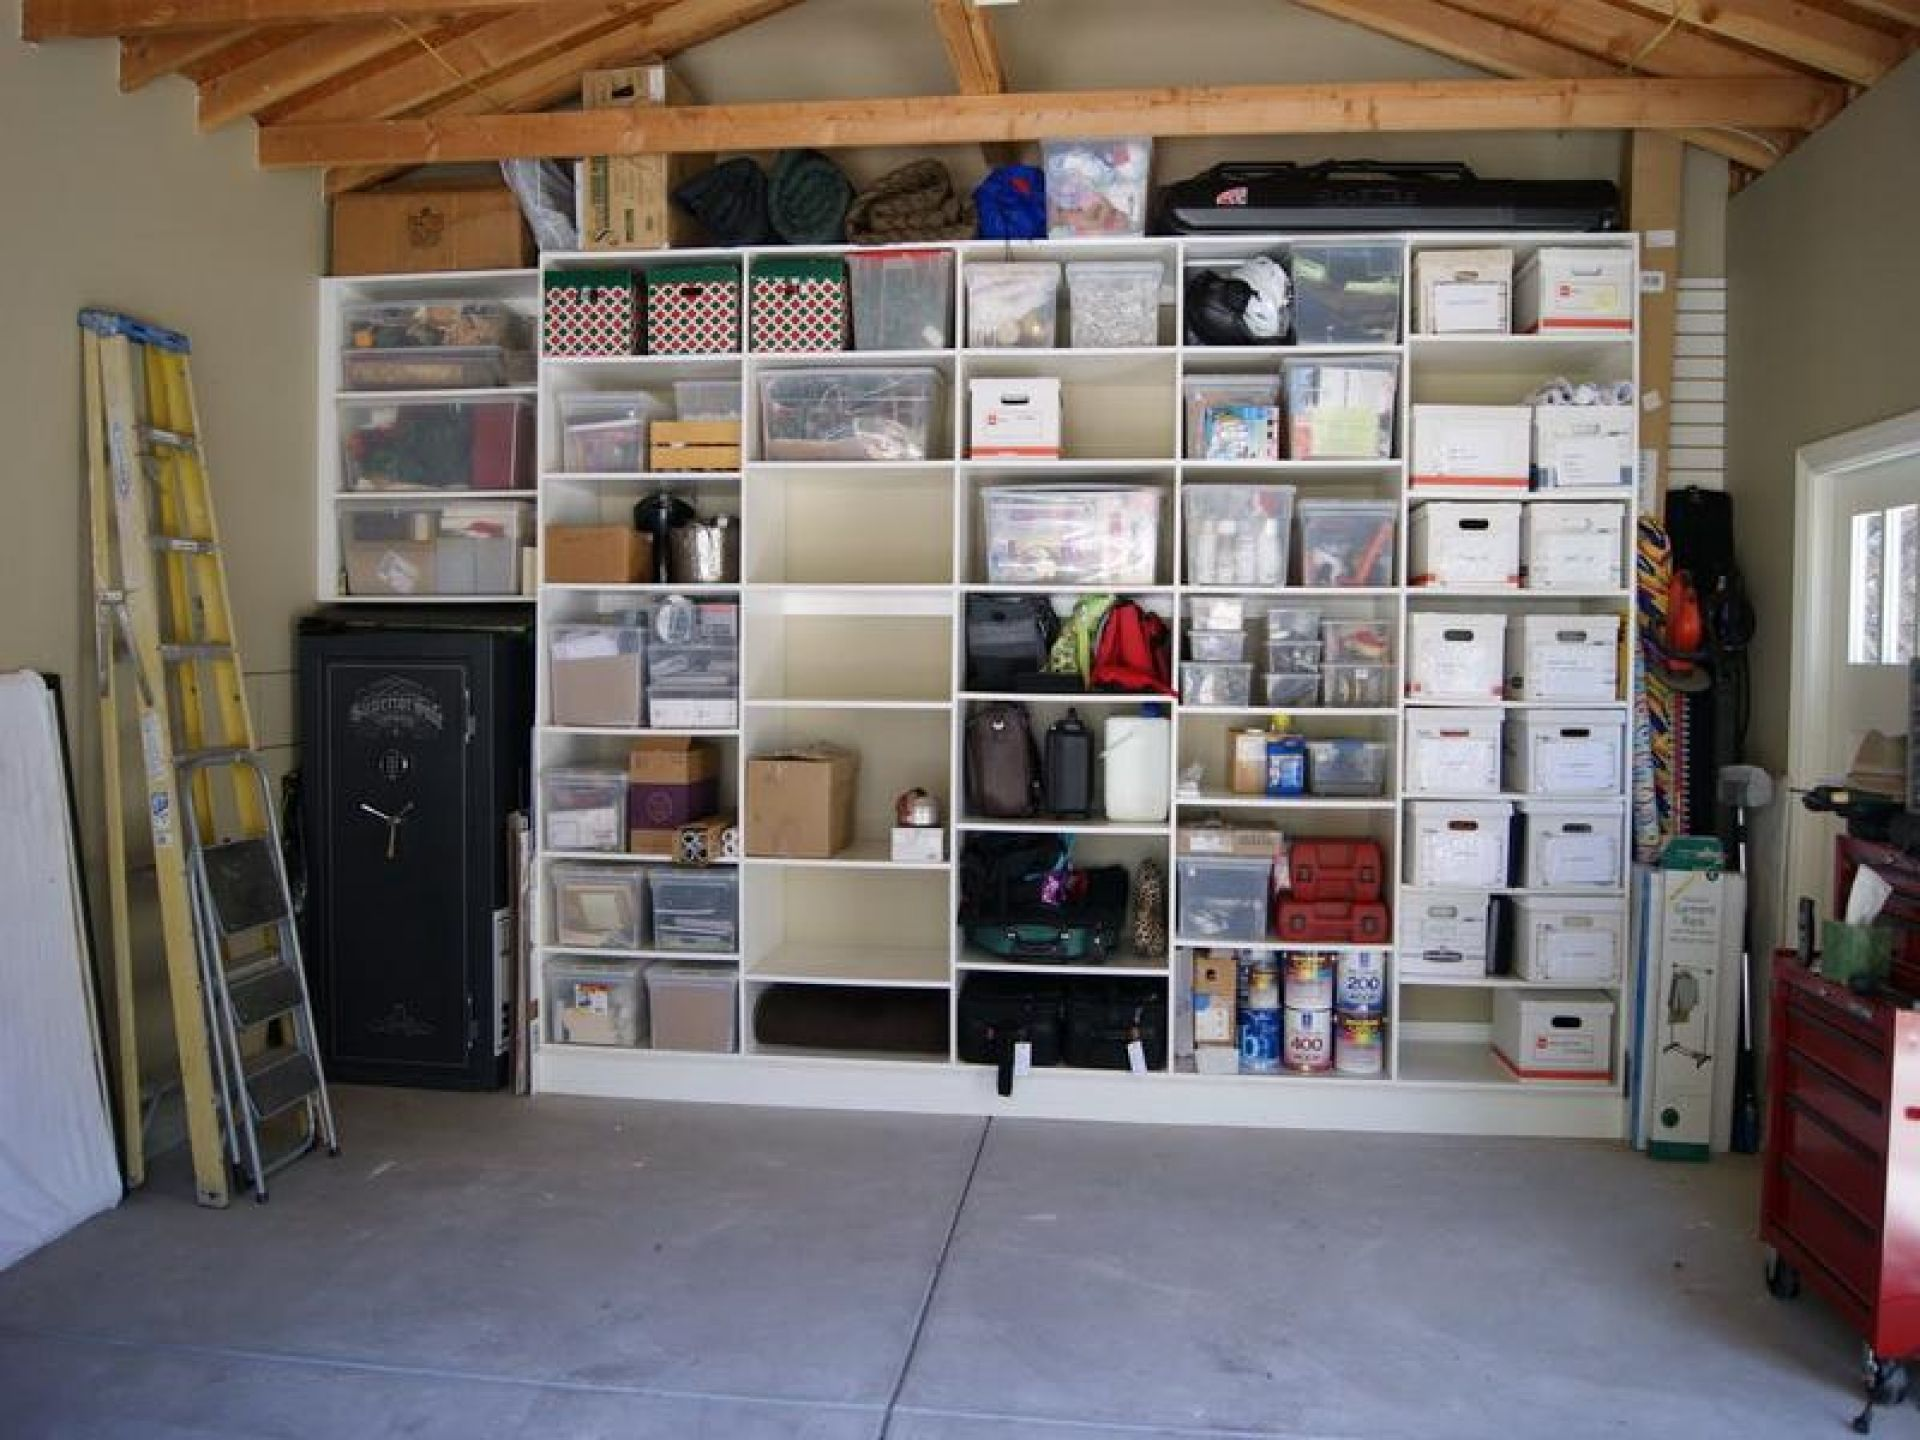 Wall Of Storage Back Of The Wall Cubby Storage Wall Storage & Organization